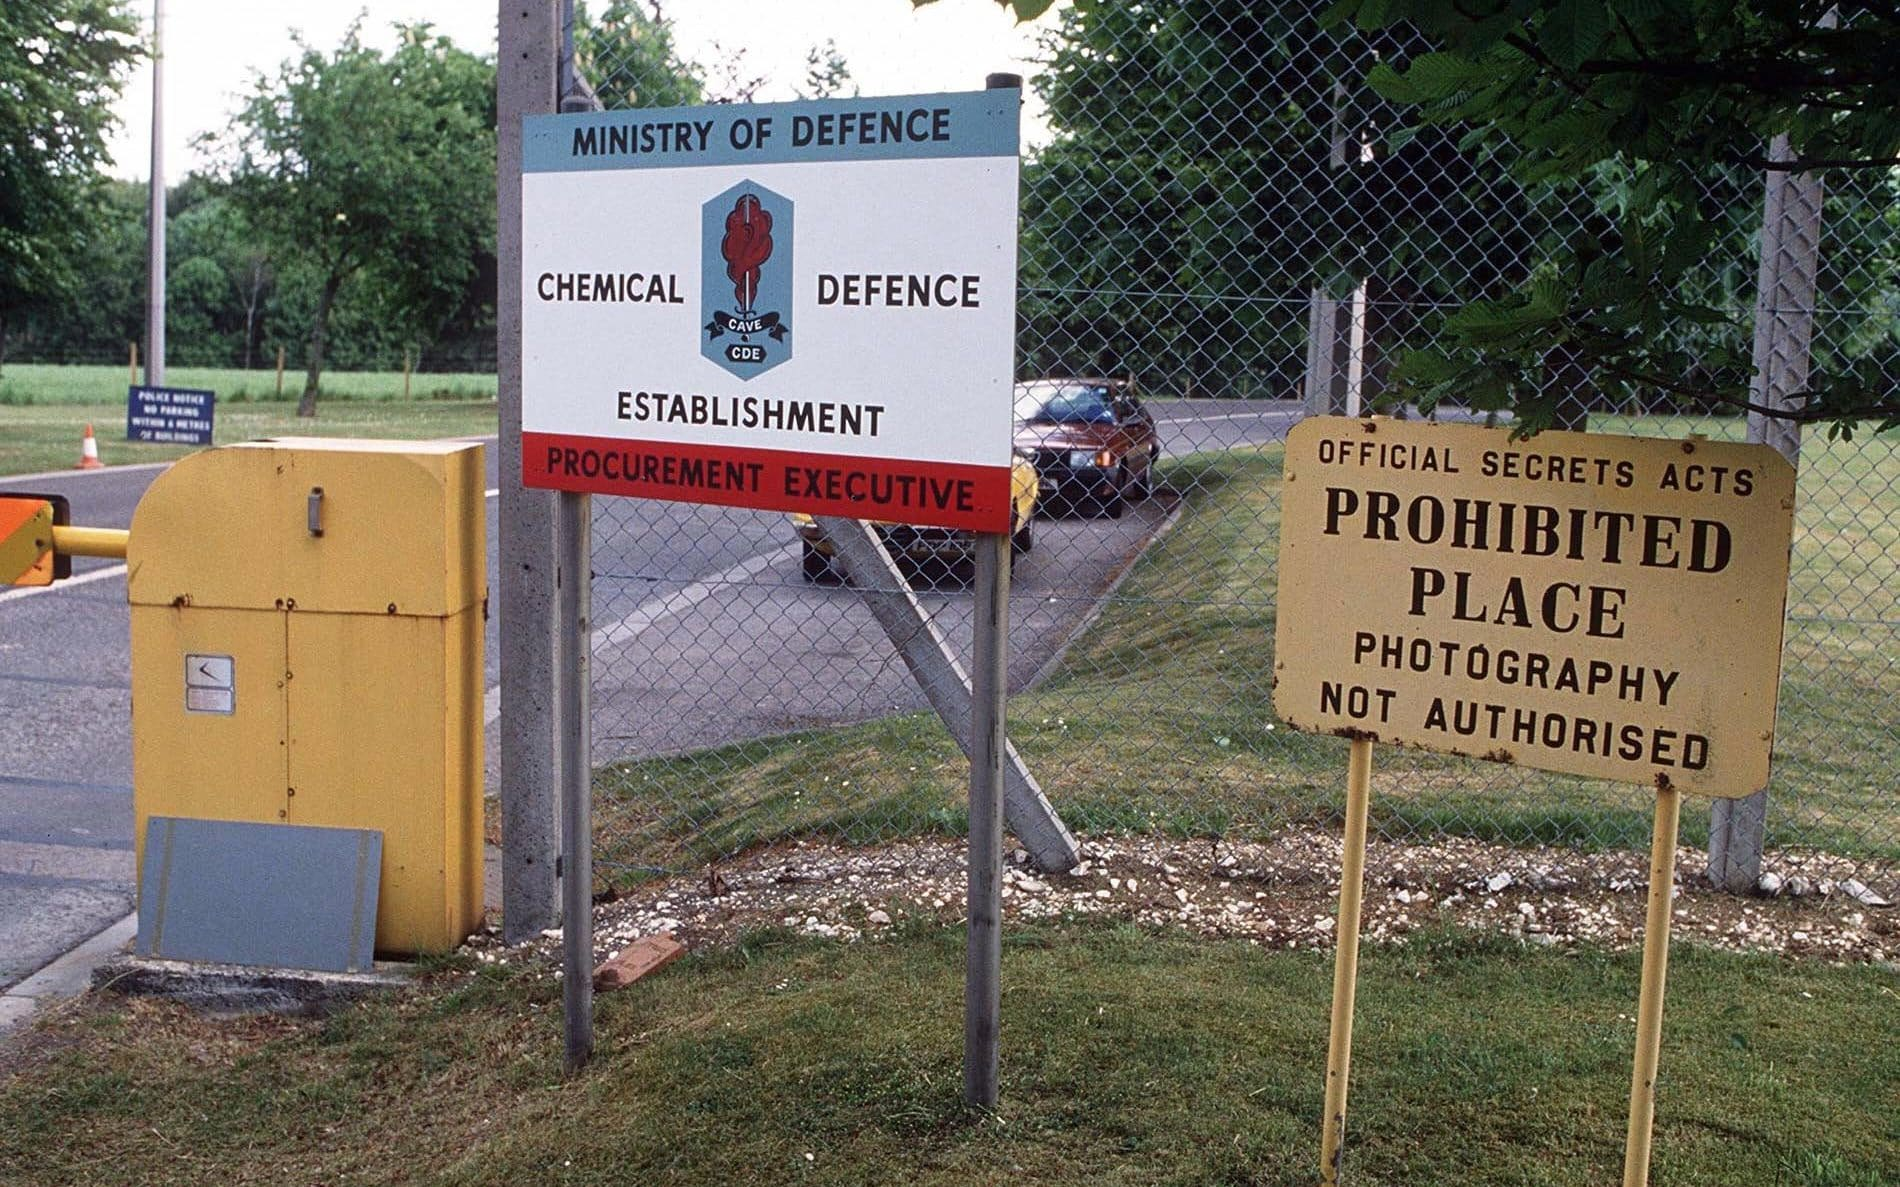 Porton Down, Salisbury, the UK Ministry of Defence's Defence Science and Technology Laboratory.